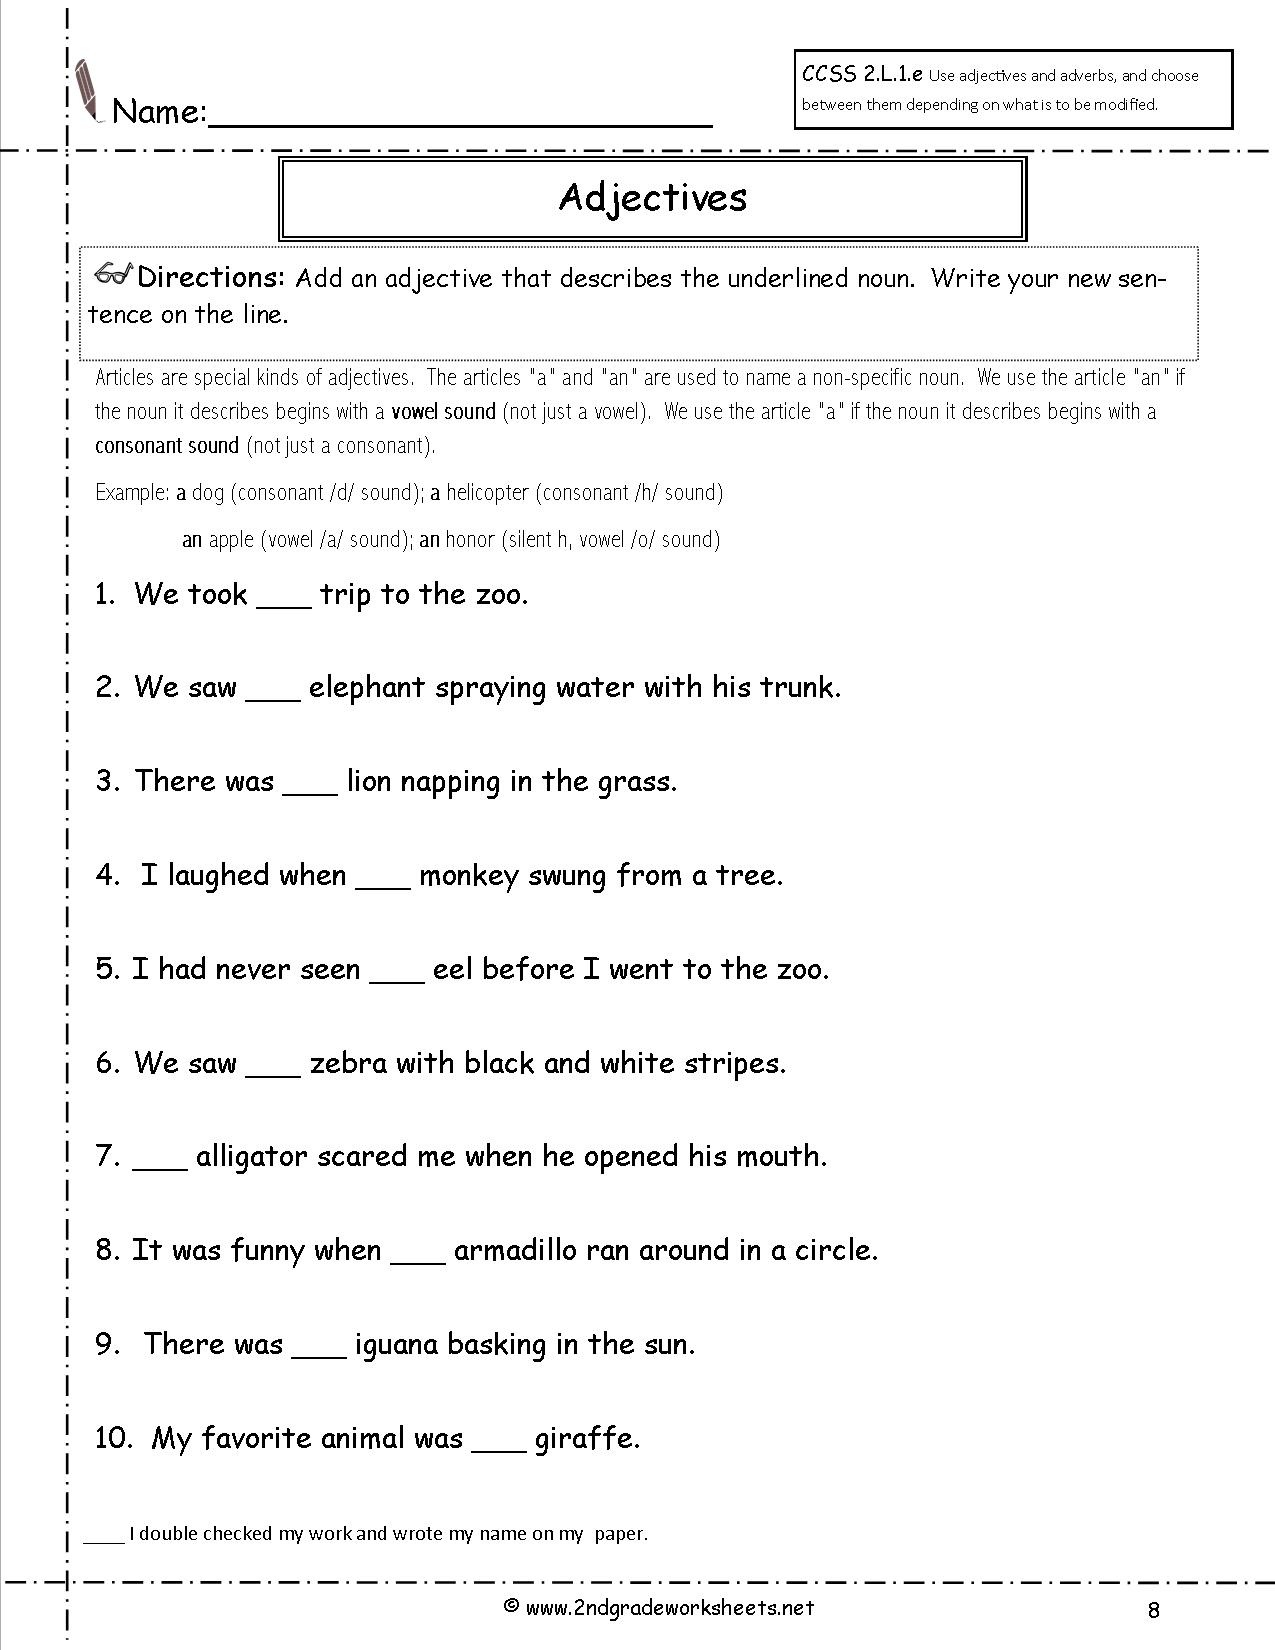 Free Printable Grammar Worksheets For 2nd Grade